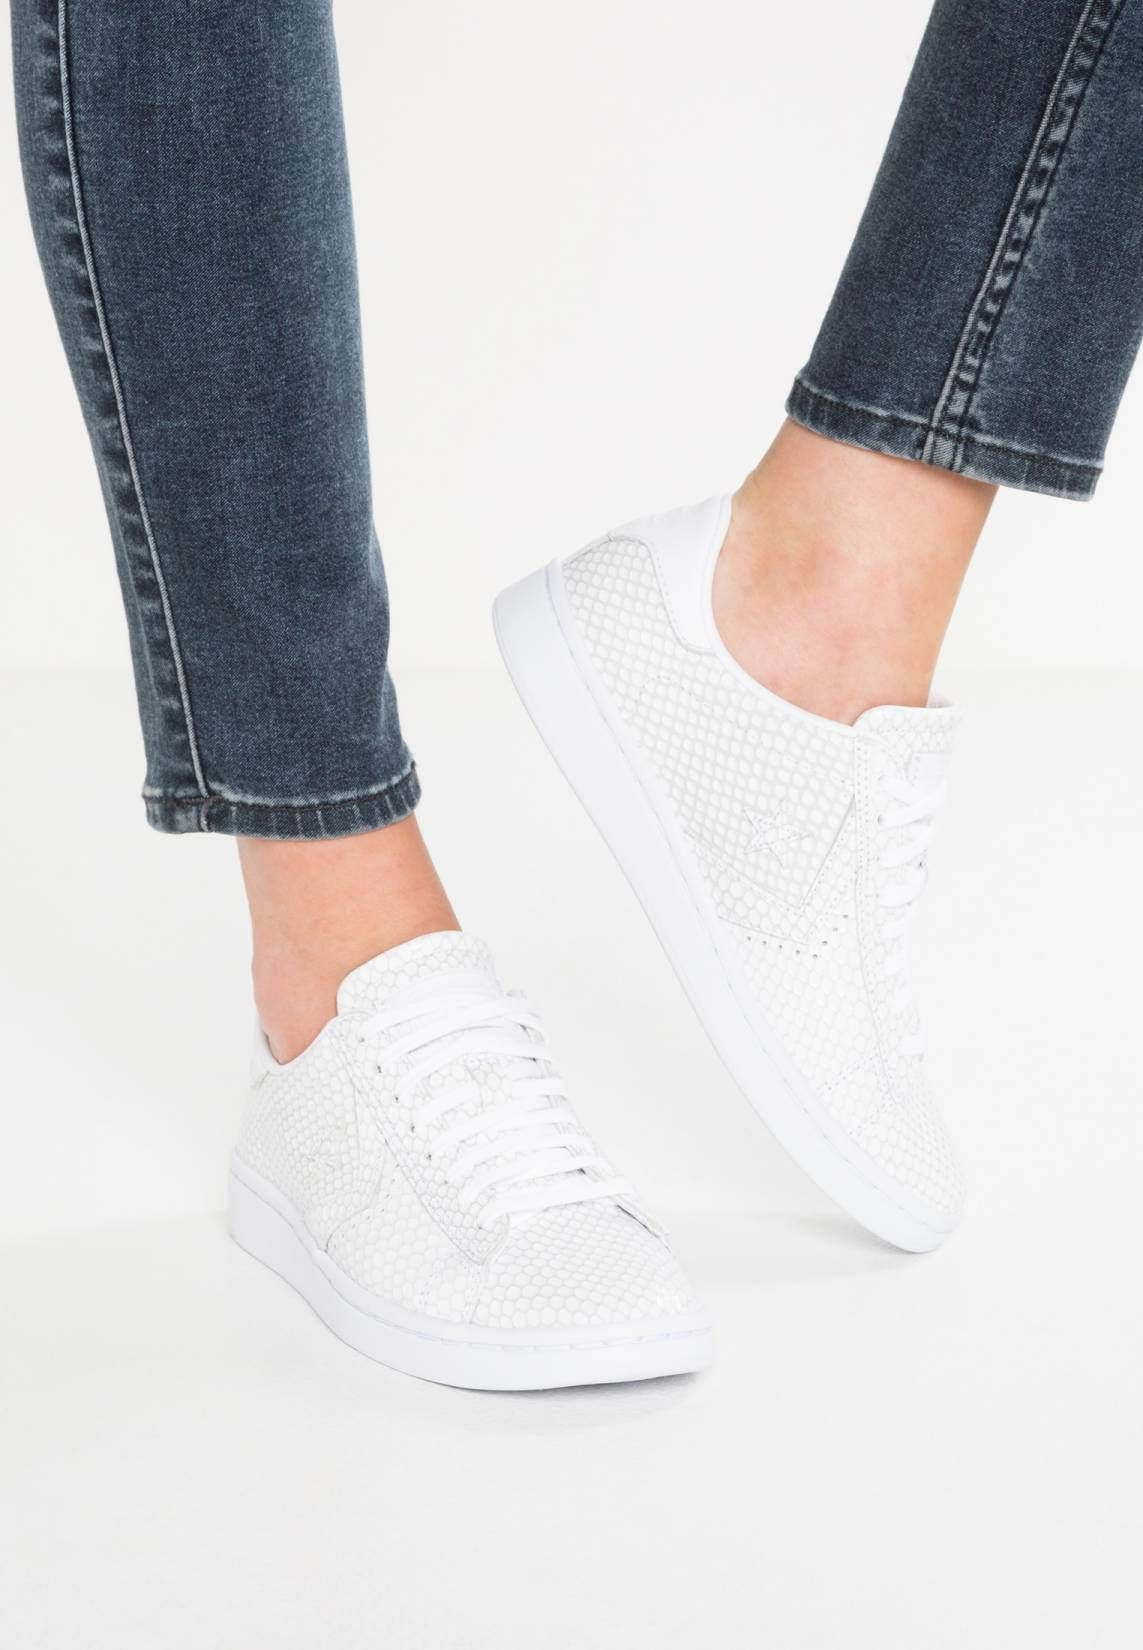 900dff33cd59 Converse. PRO LEATHER LP - Trainers - white black. Sole synthetics ...